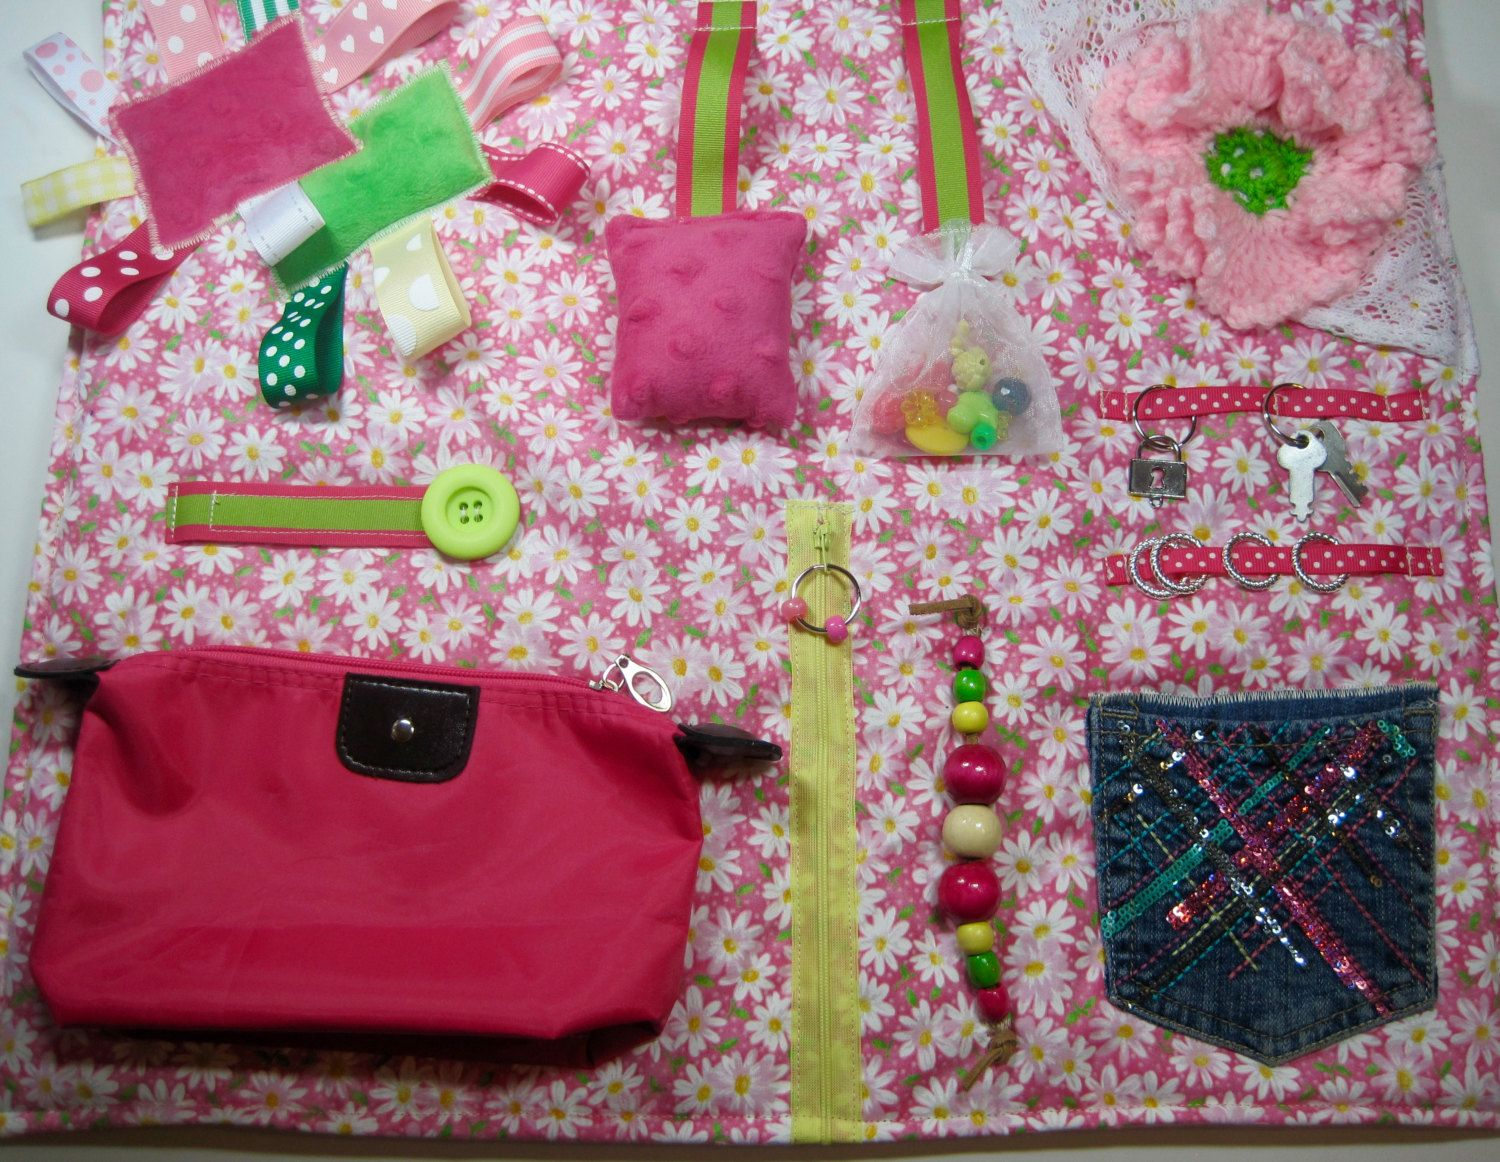 Daisies on pink quilt fidget sensory activity quilt blanket by